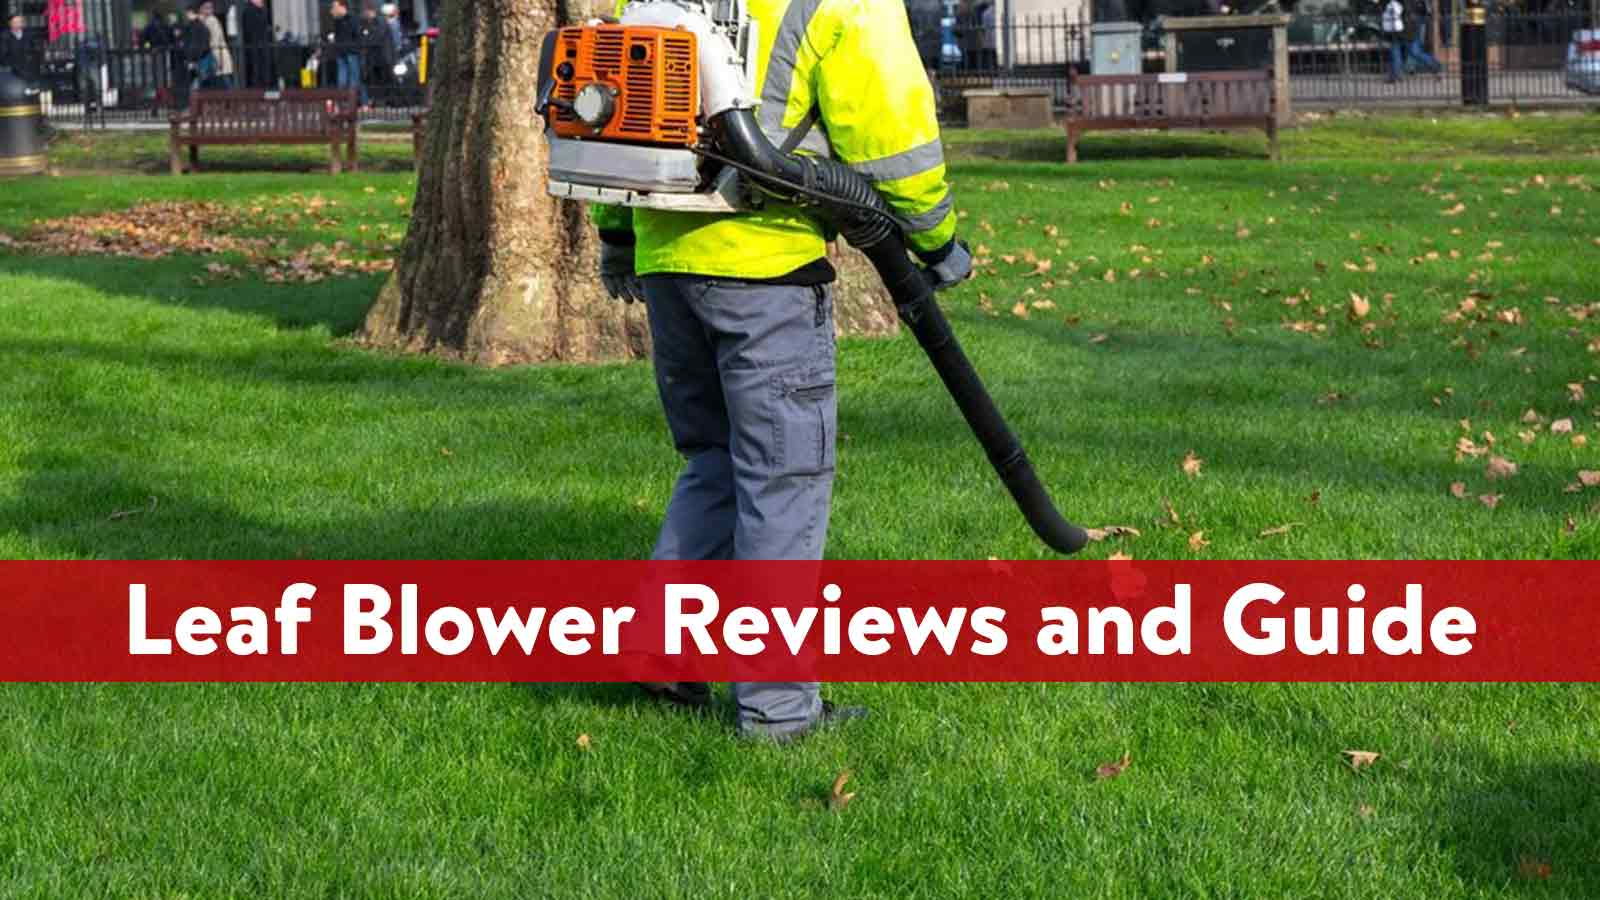 Leaf Blower Reviews and Guide